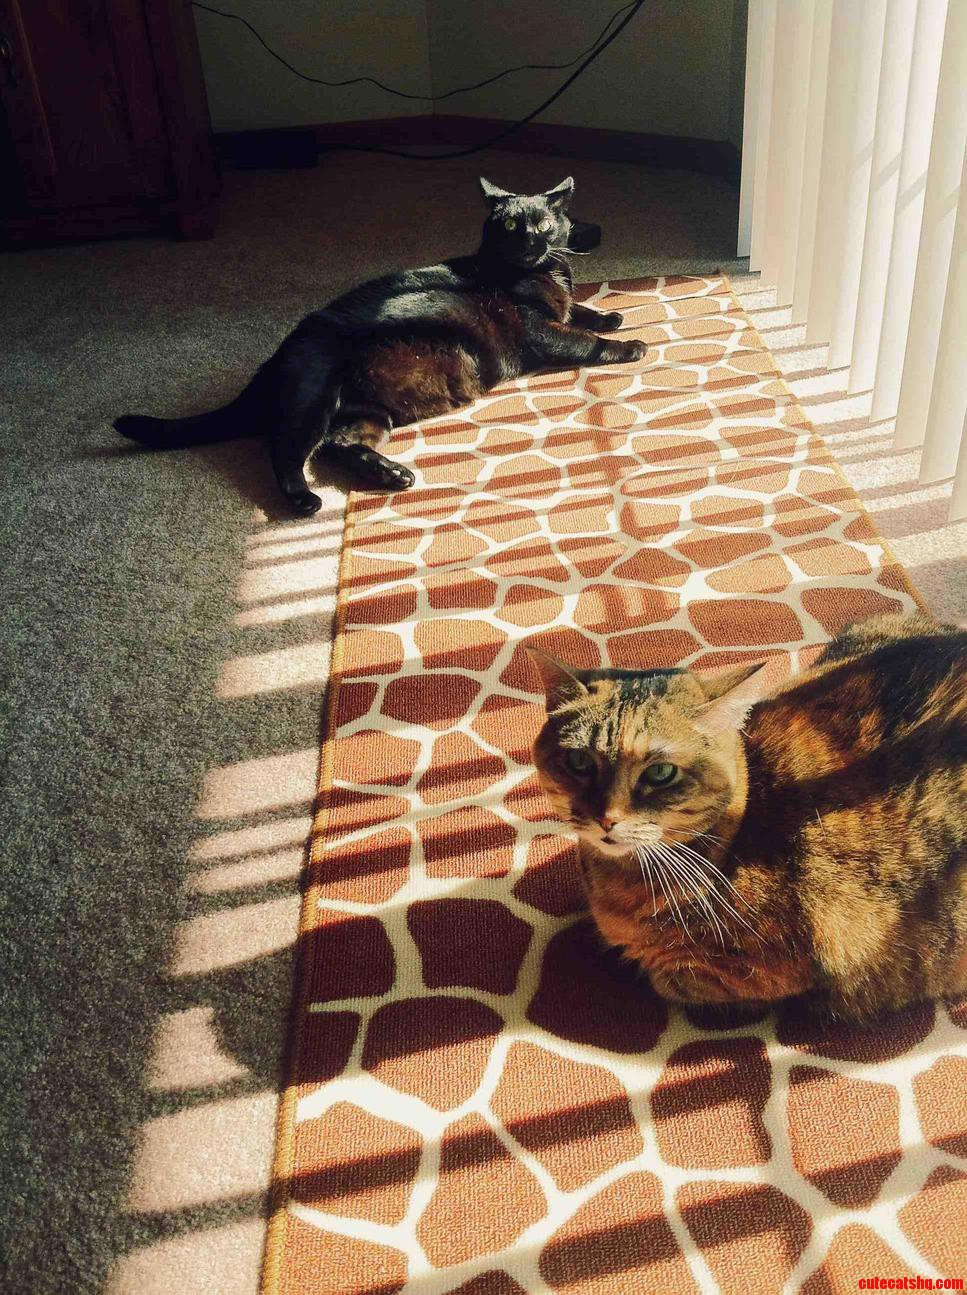 They Take Every Chance They Get To Sunbathe.